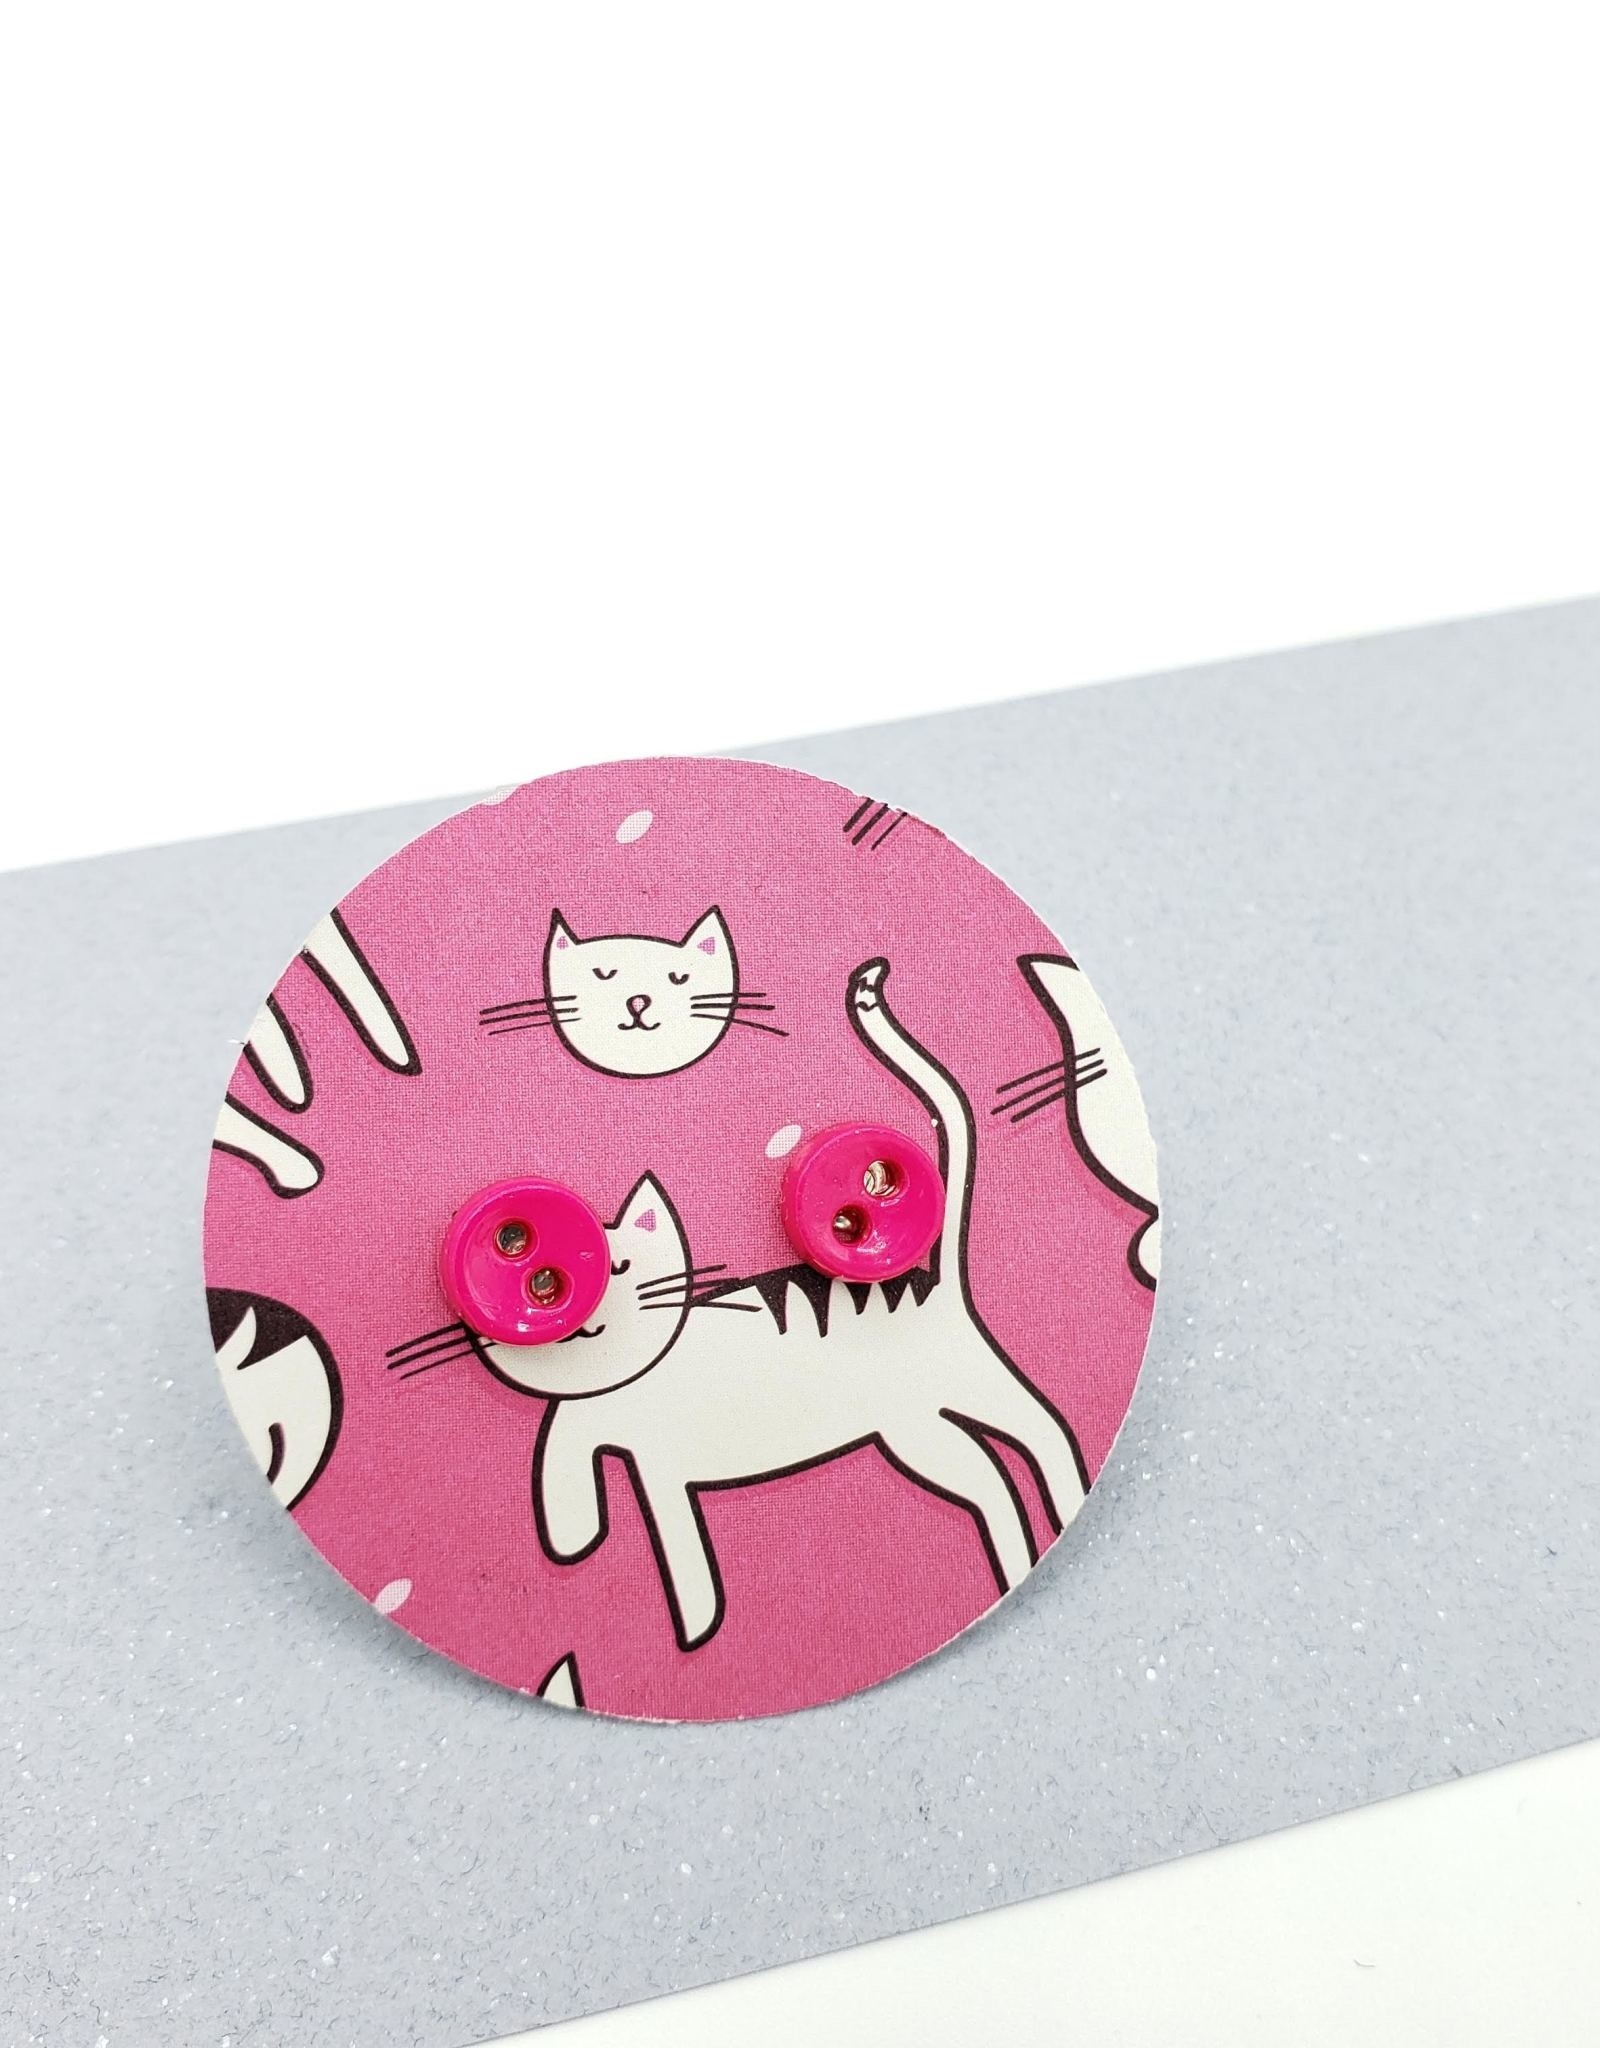 Kirsten Elise Jewelry Tiny Hot Pink Button Stud Earrings by Kirsten Elise